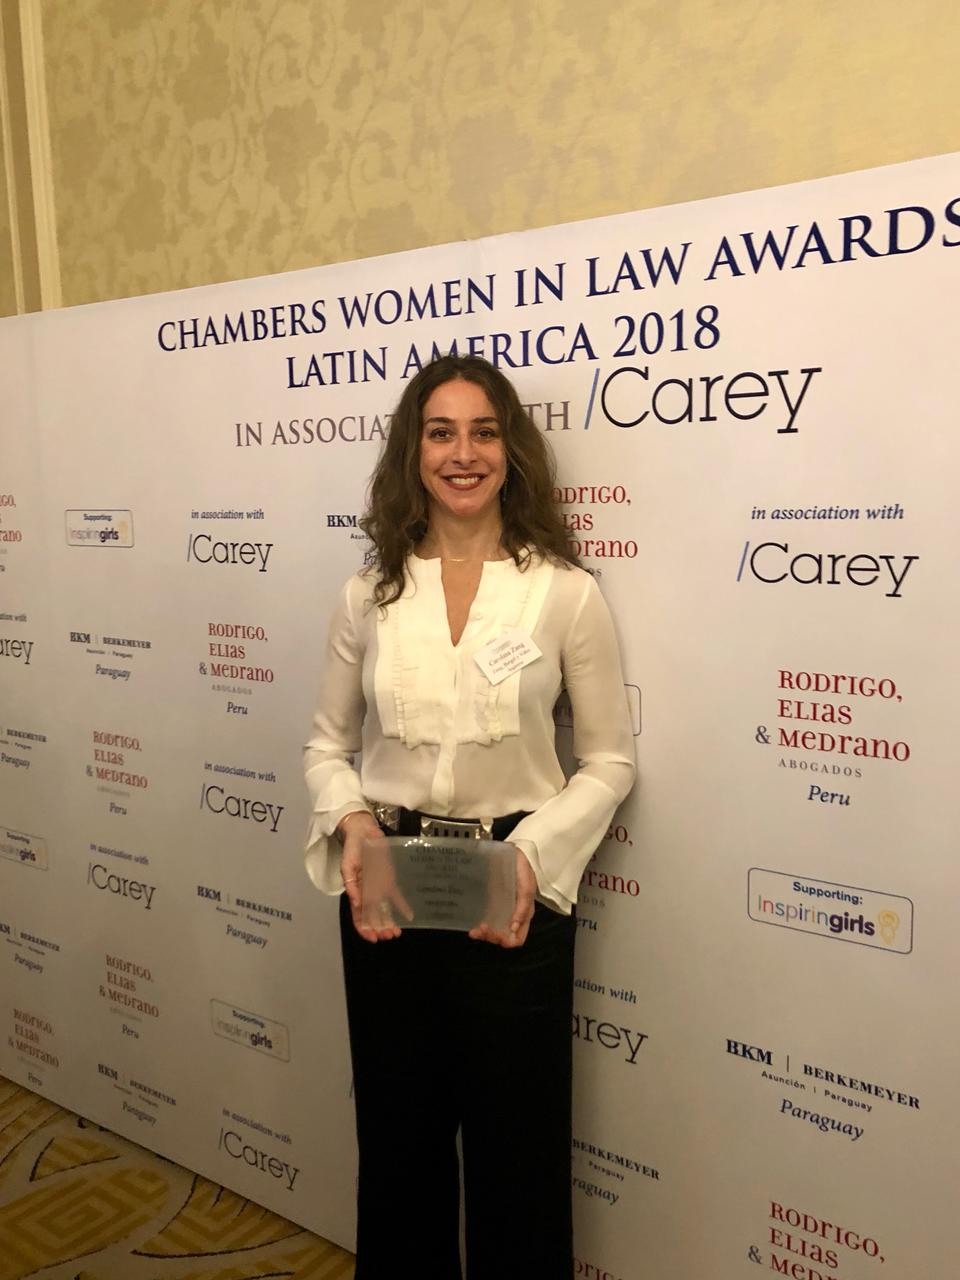 Carolina Zang ganó el Chambers Women in Law Awards de Argentina a3de6f498134